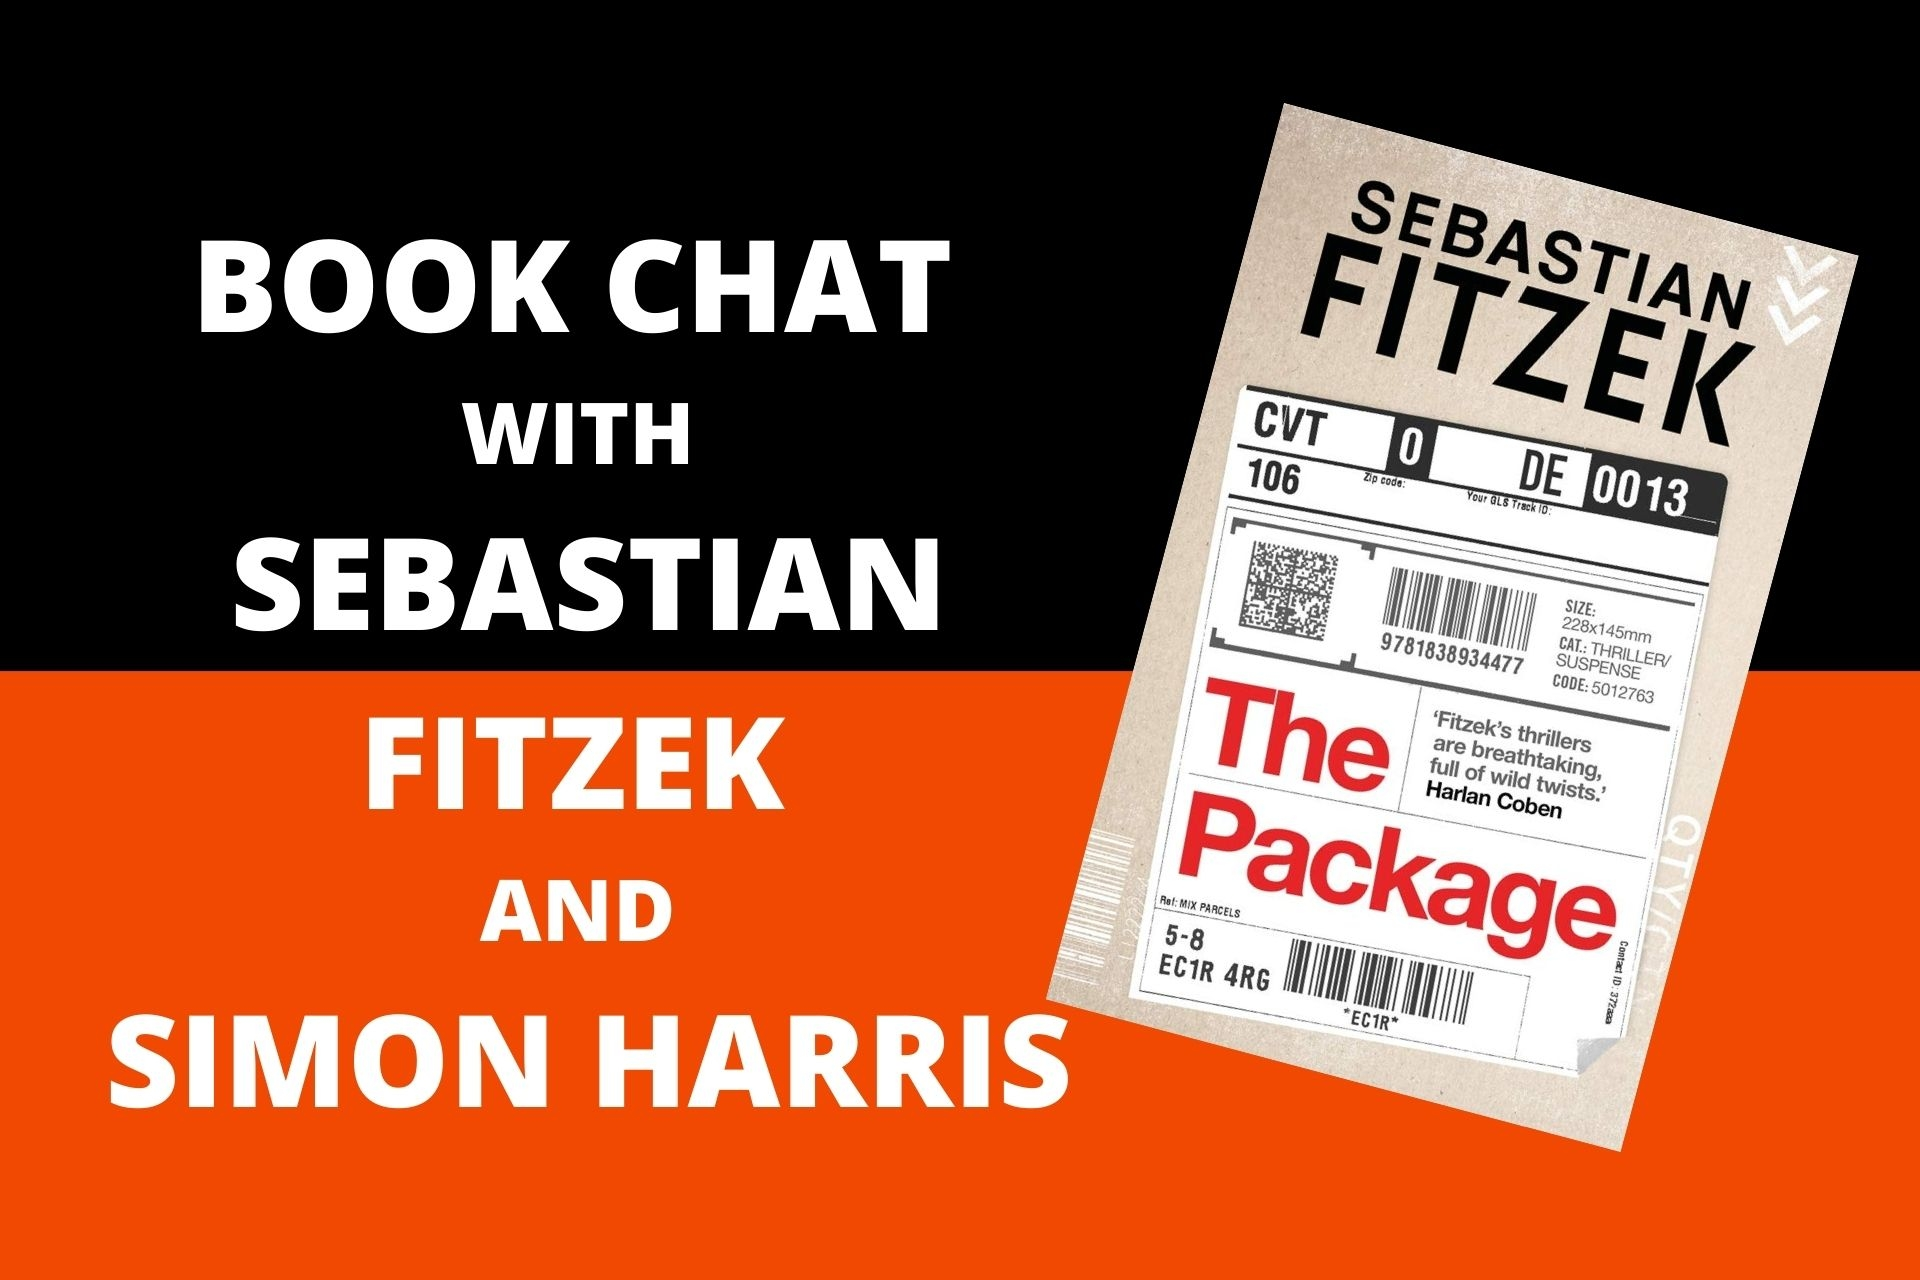 Book Chat with Sebastian Fitzek and Simon Harris